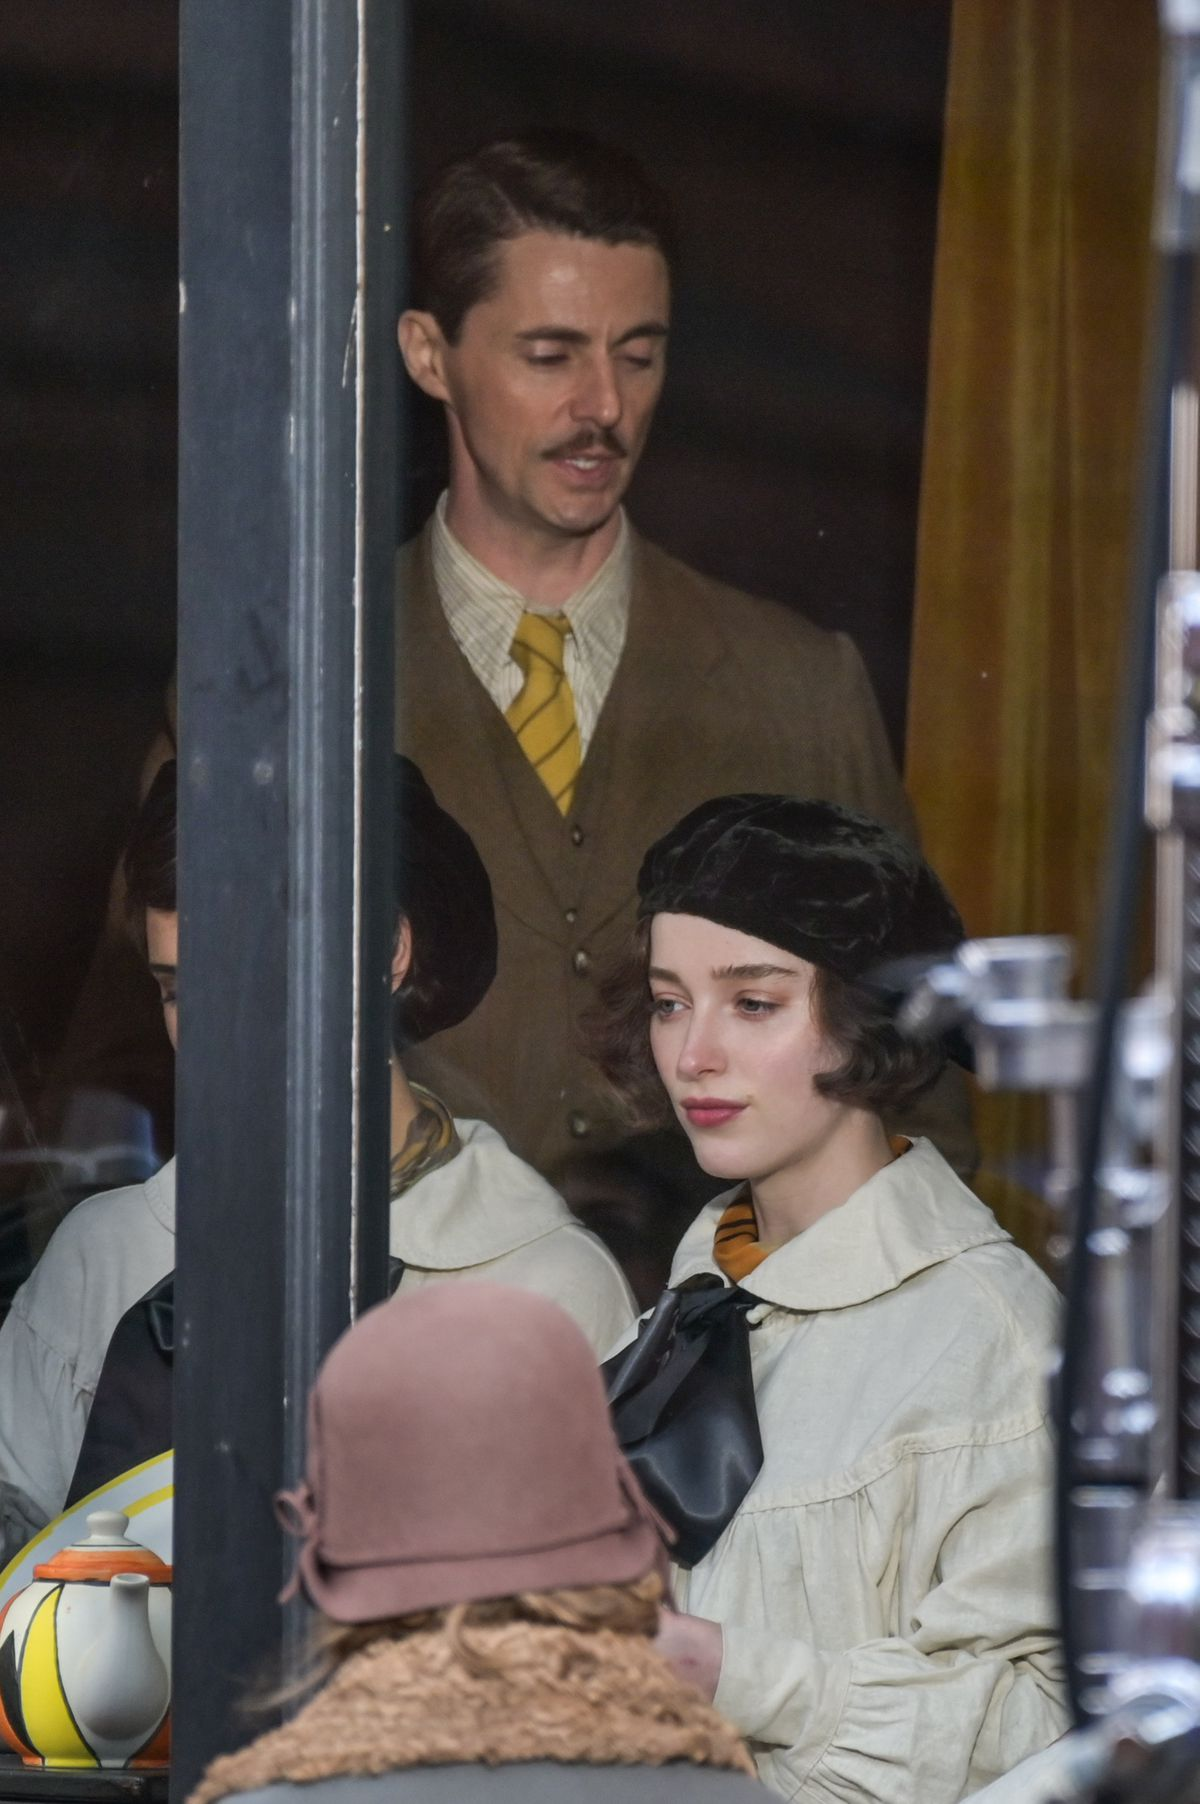 Phoebe Dynevor and Matthew Goode filming of The Colour Room in Birmingham. Photo: SnapperSK.